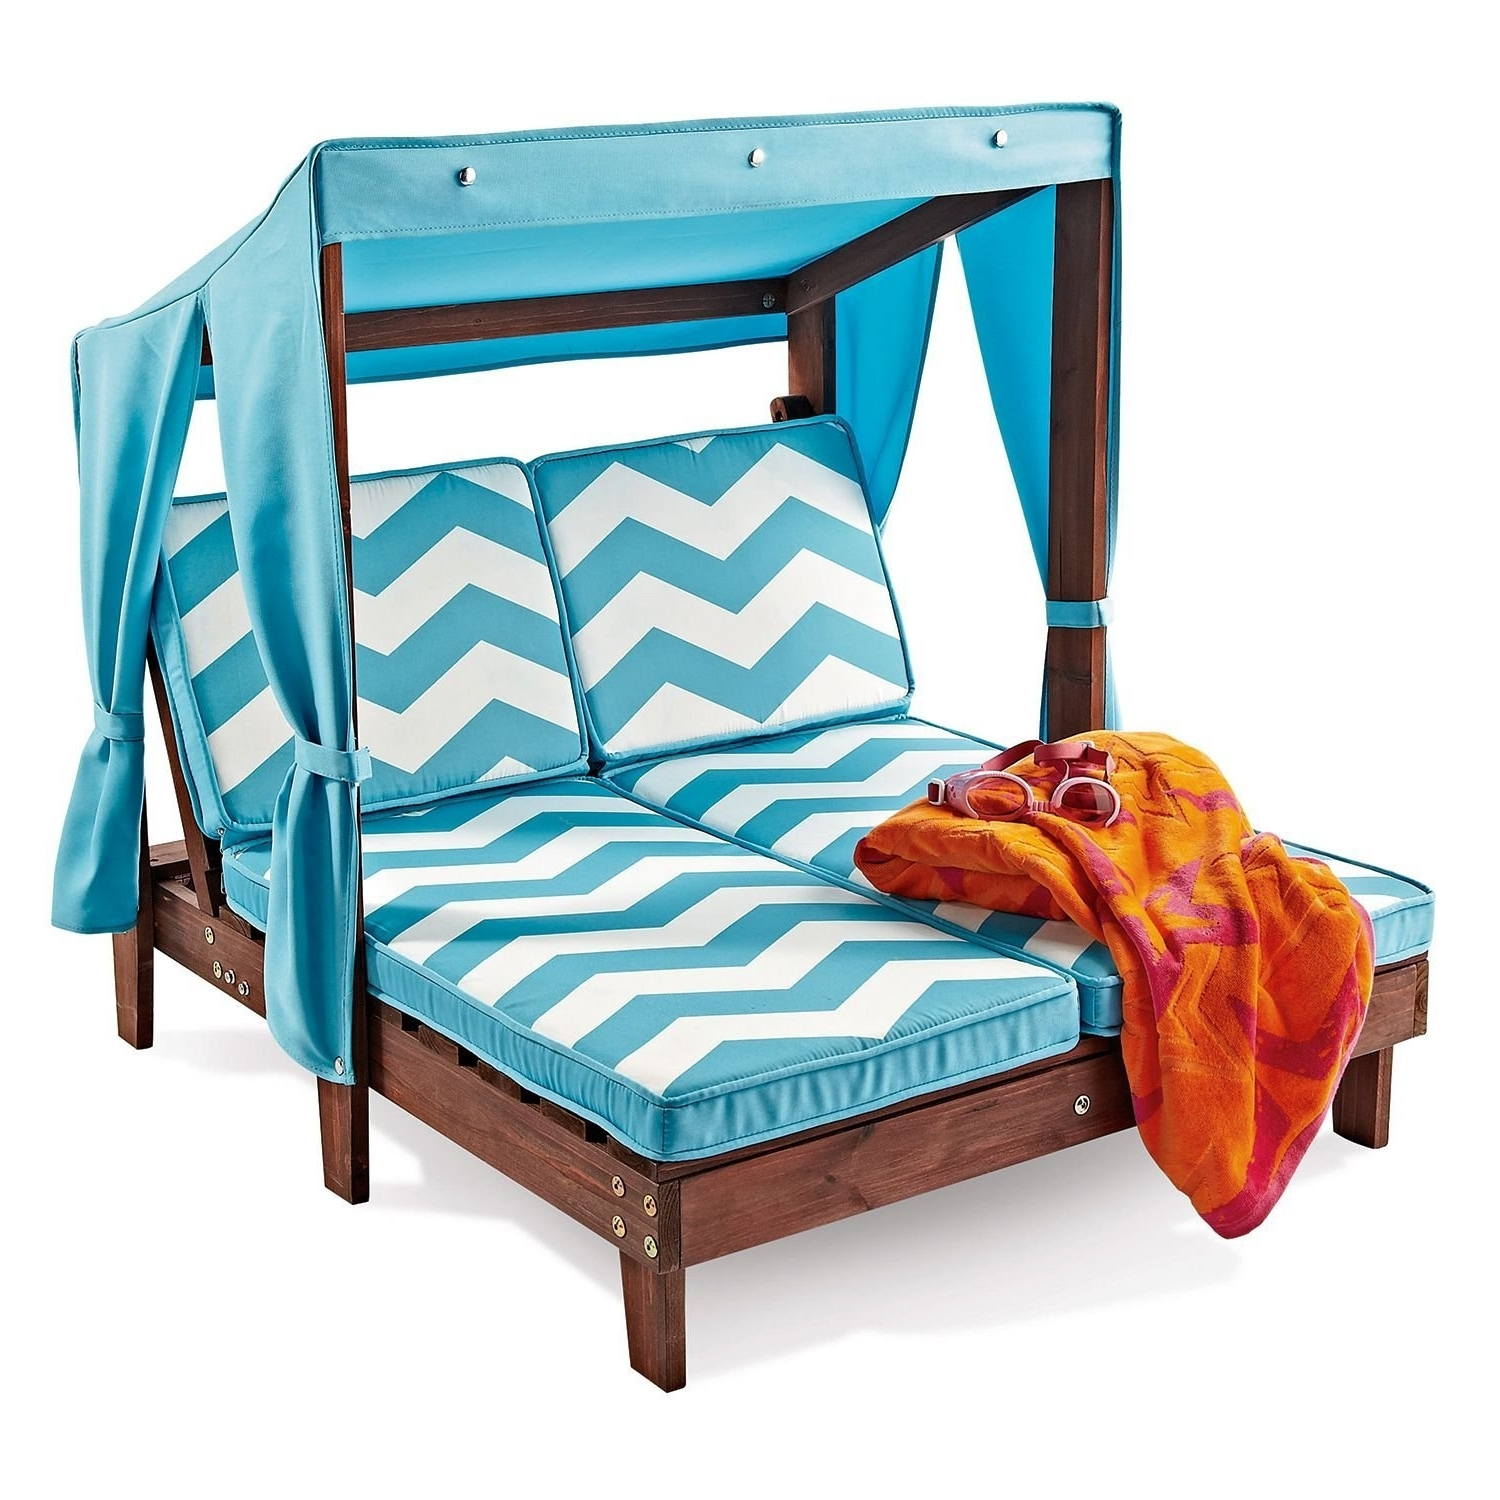 Fashionable Children's Outdoor Chaise Lounge Chairs Inside Picture 9 Of 9 – Outdoor Kids Chair New Sunday Swoon Kids Backyard (View 1 of 15)